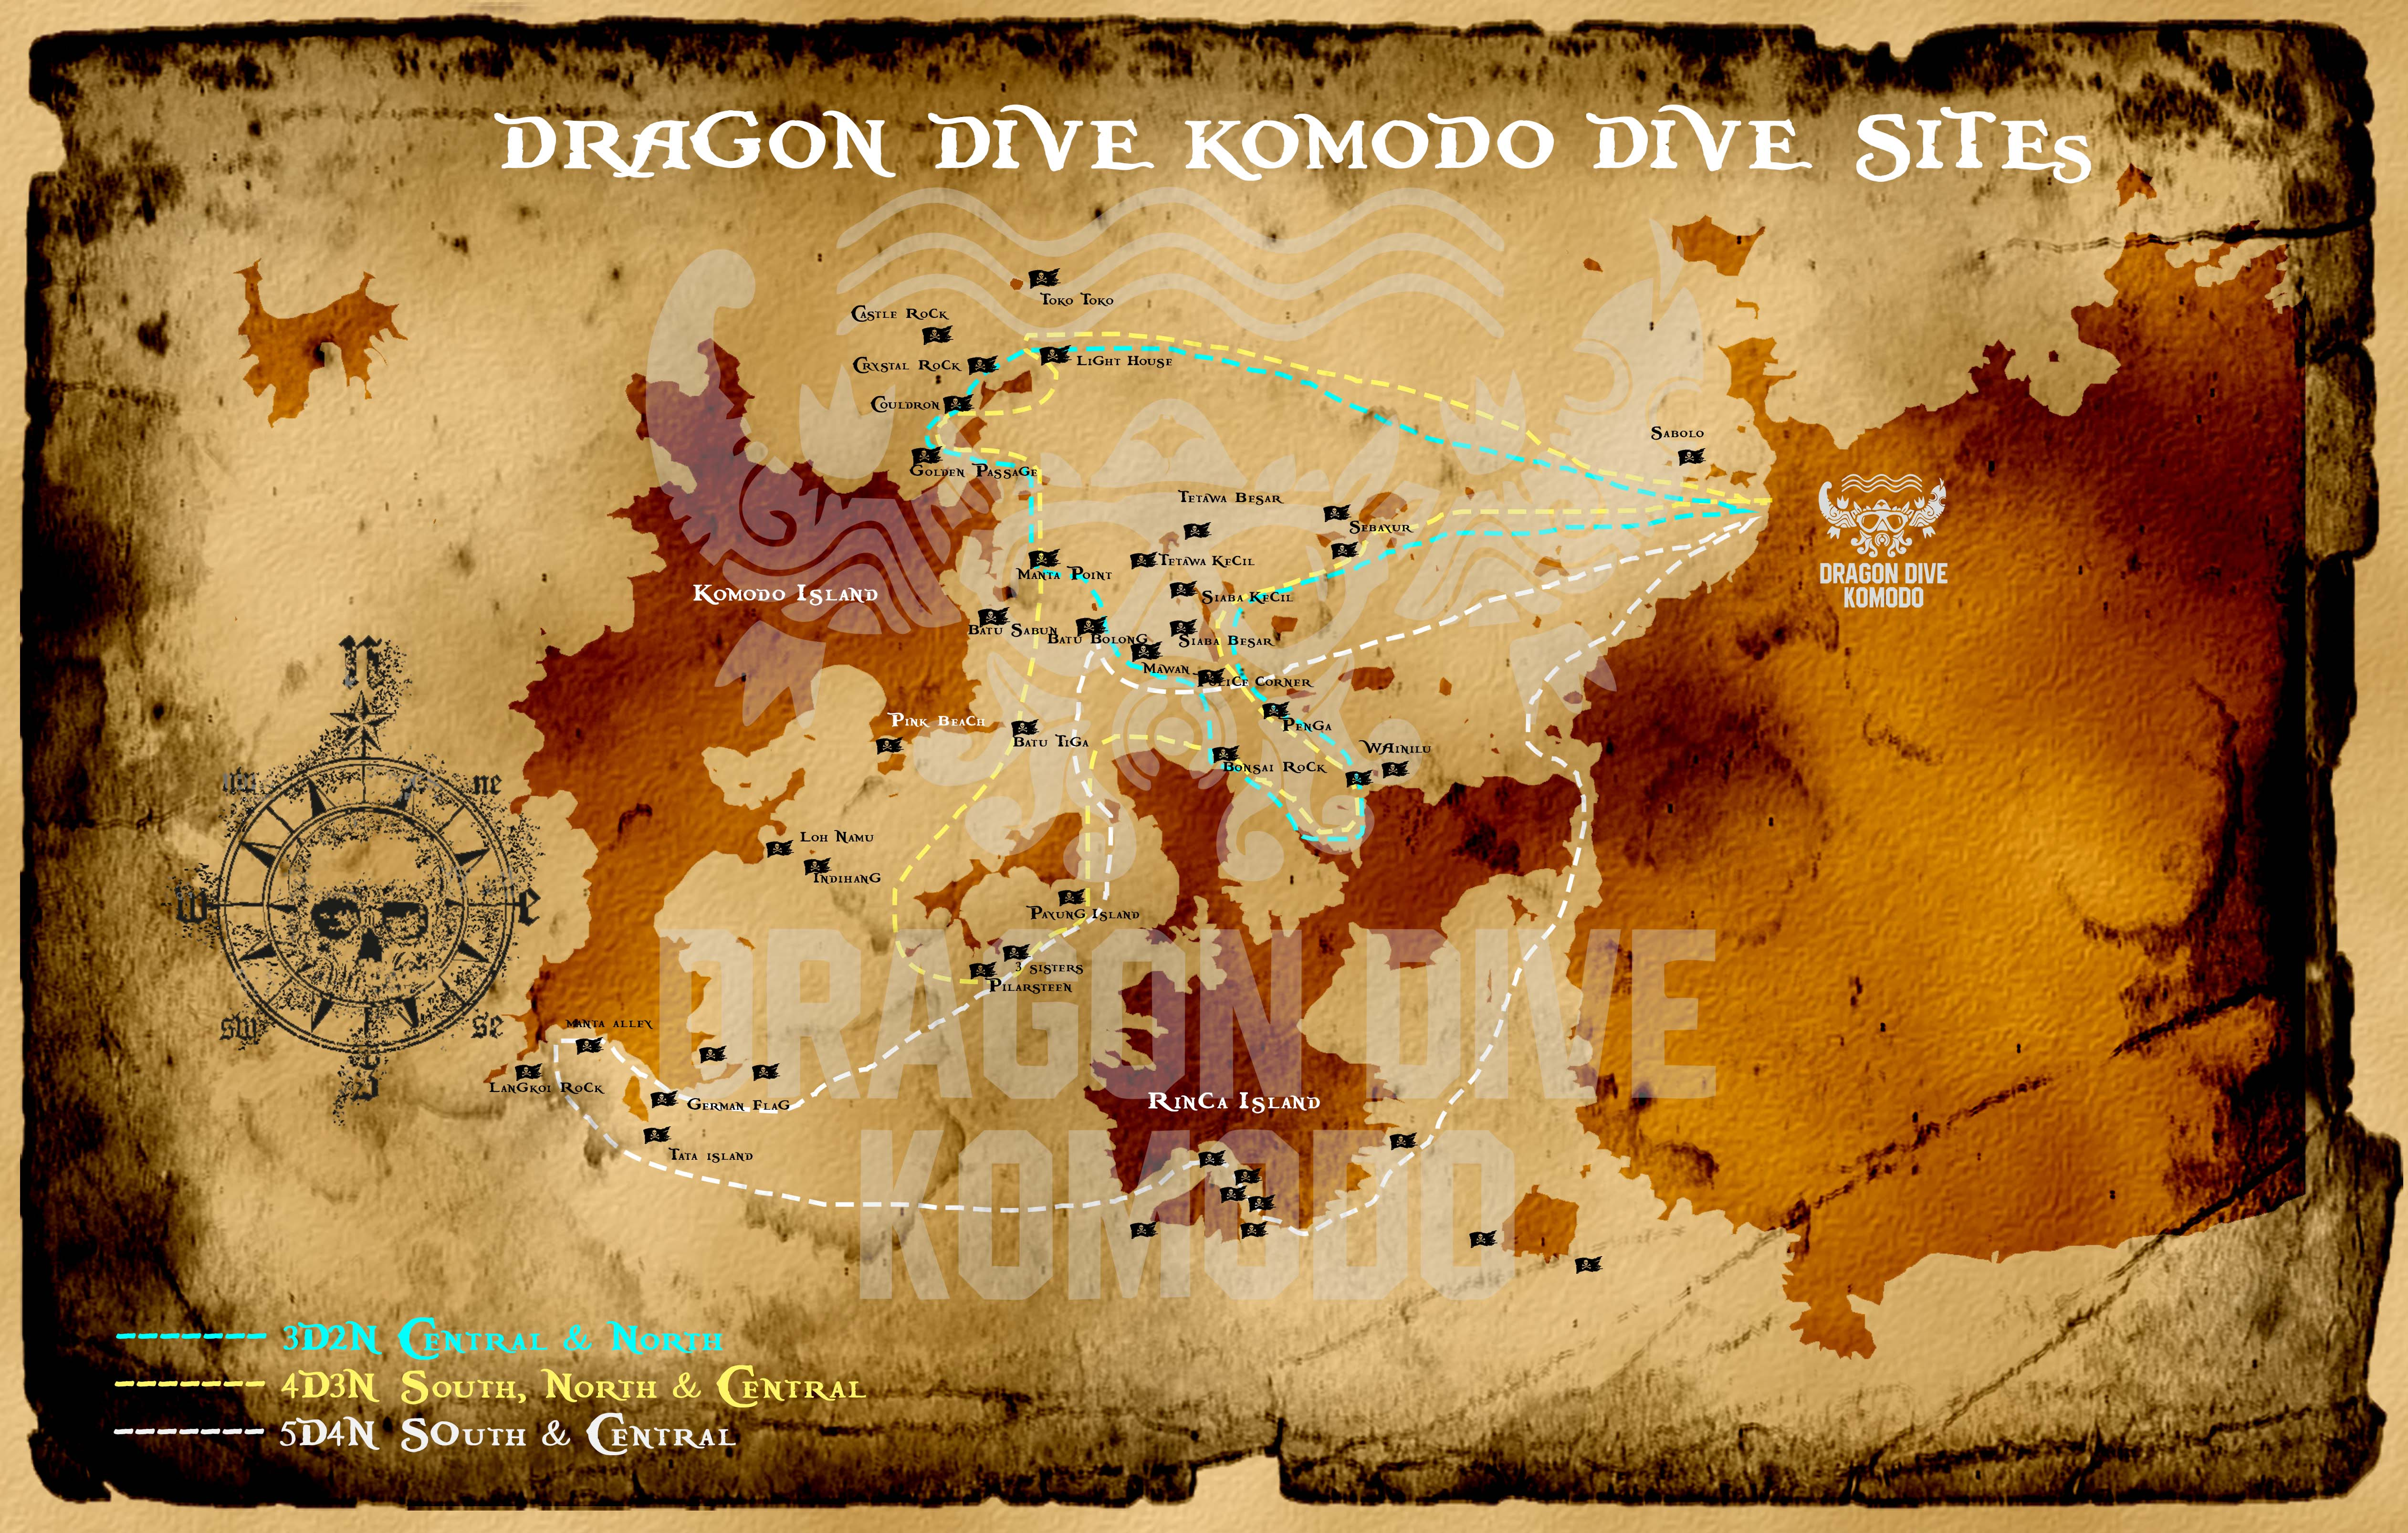 Dragon Dive Komodo Map DIve Sites and Boat Routes